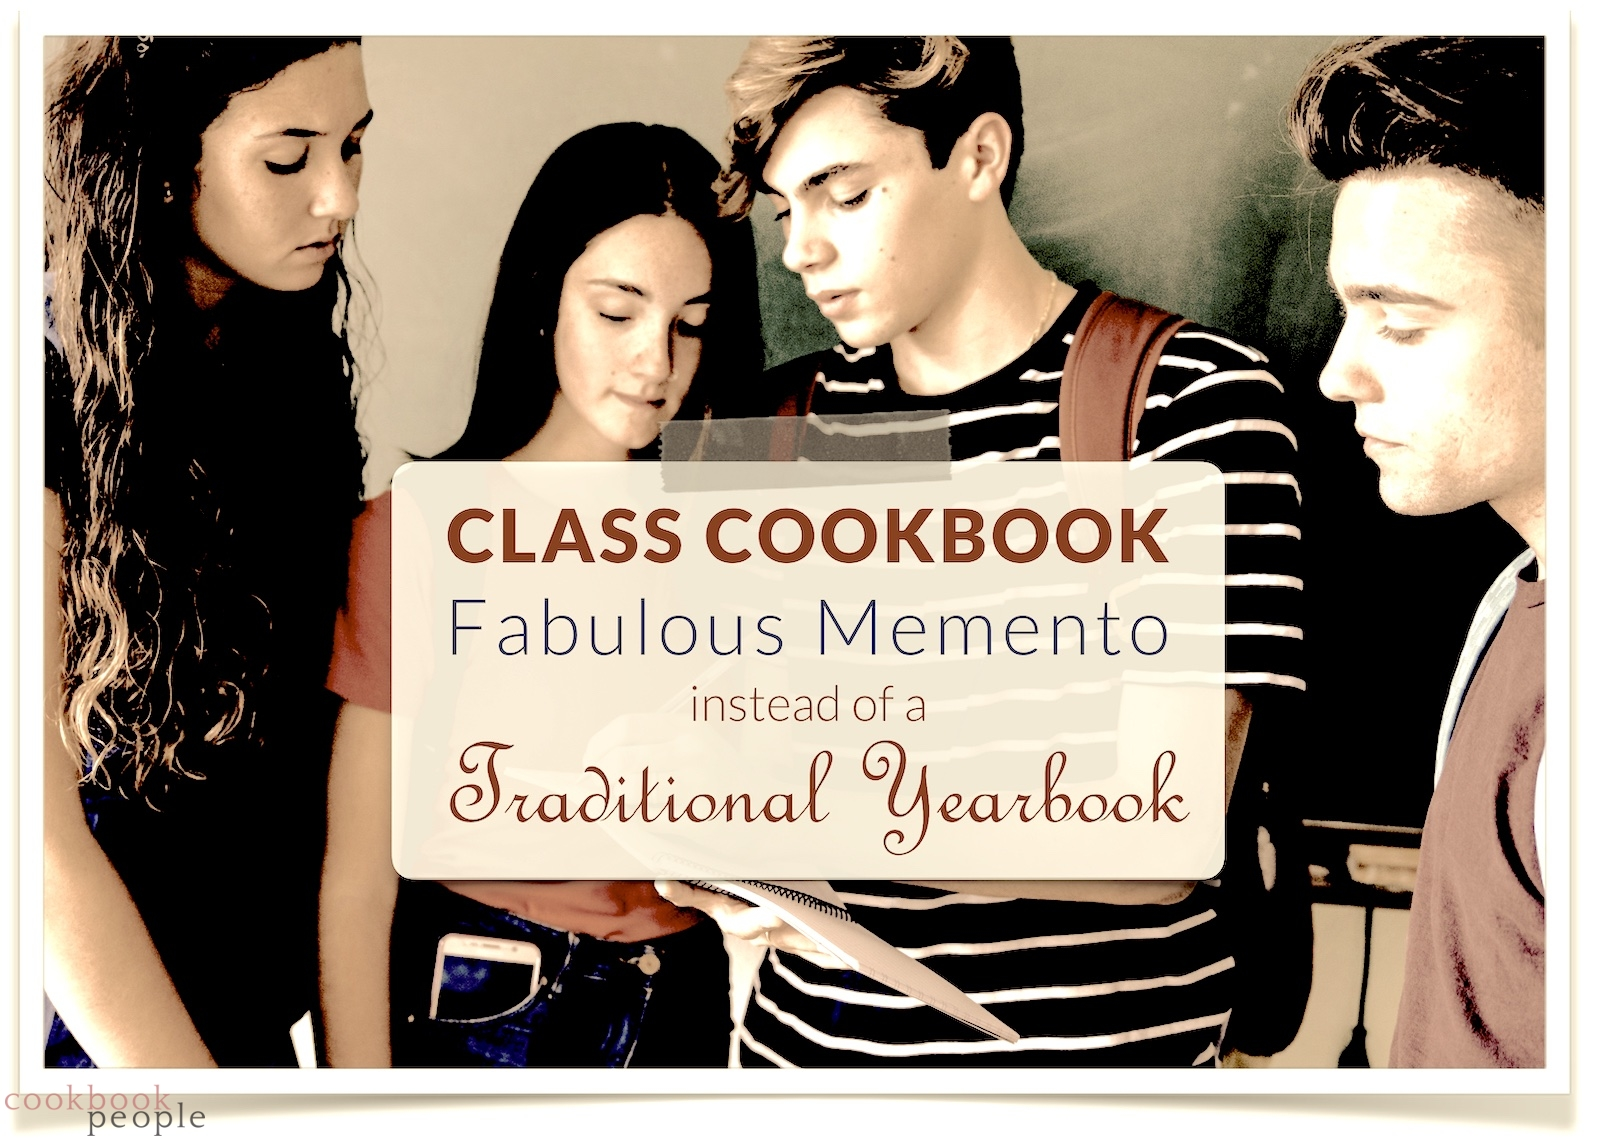 Group of kids looking writing in book with text: Class Cookbook: Fabulous Memento Instead of Traditional Yearbook